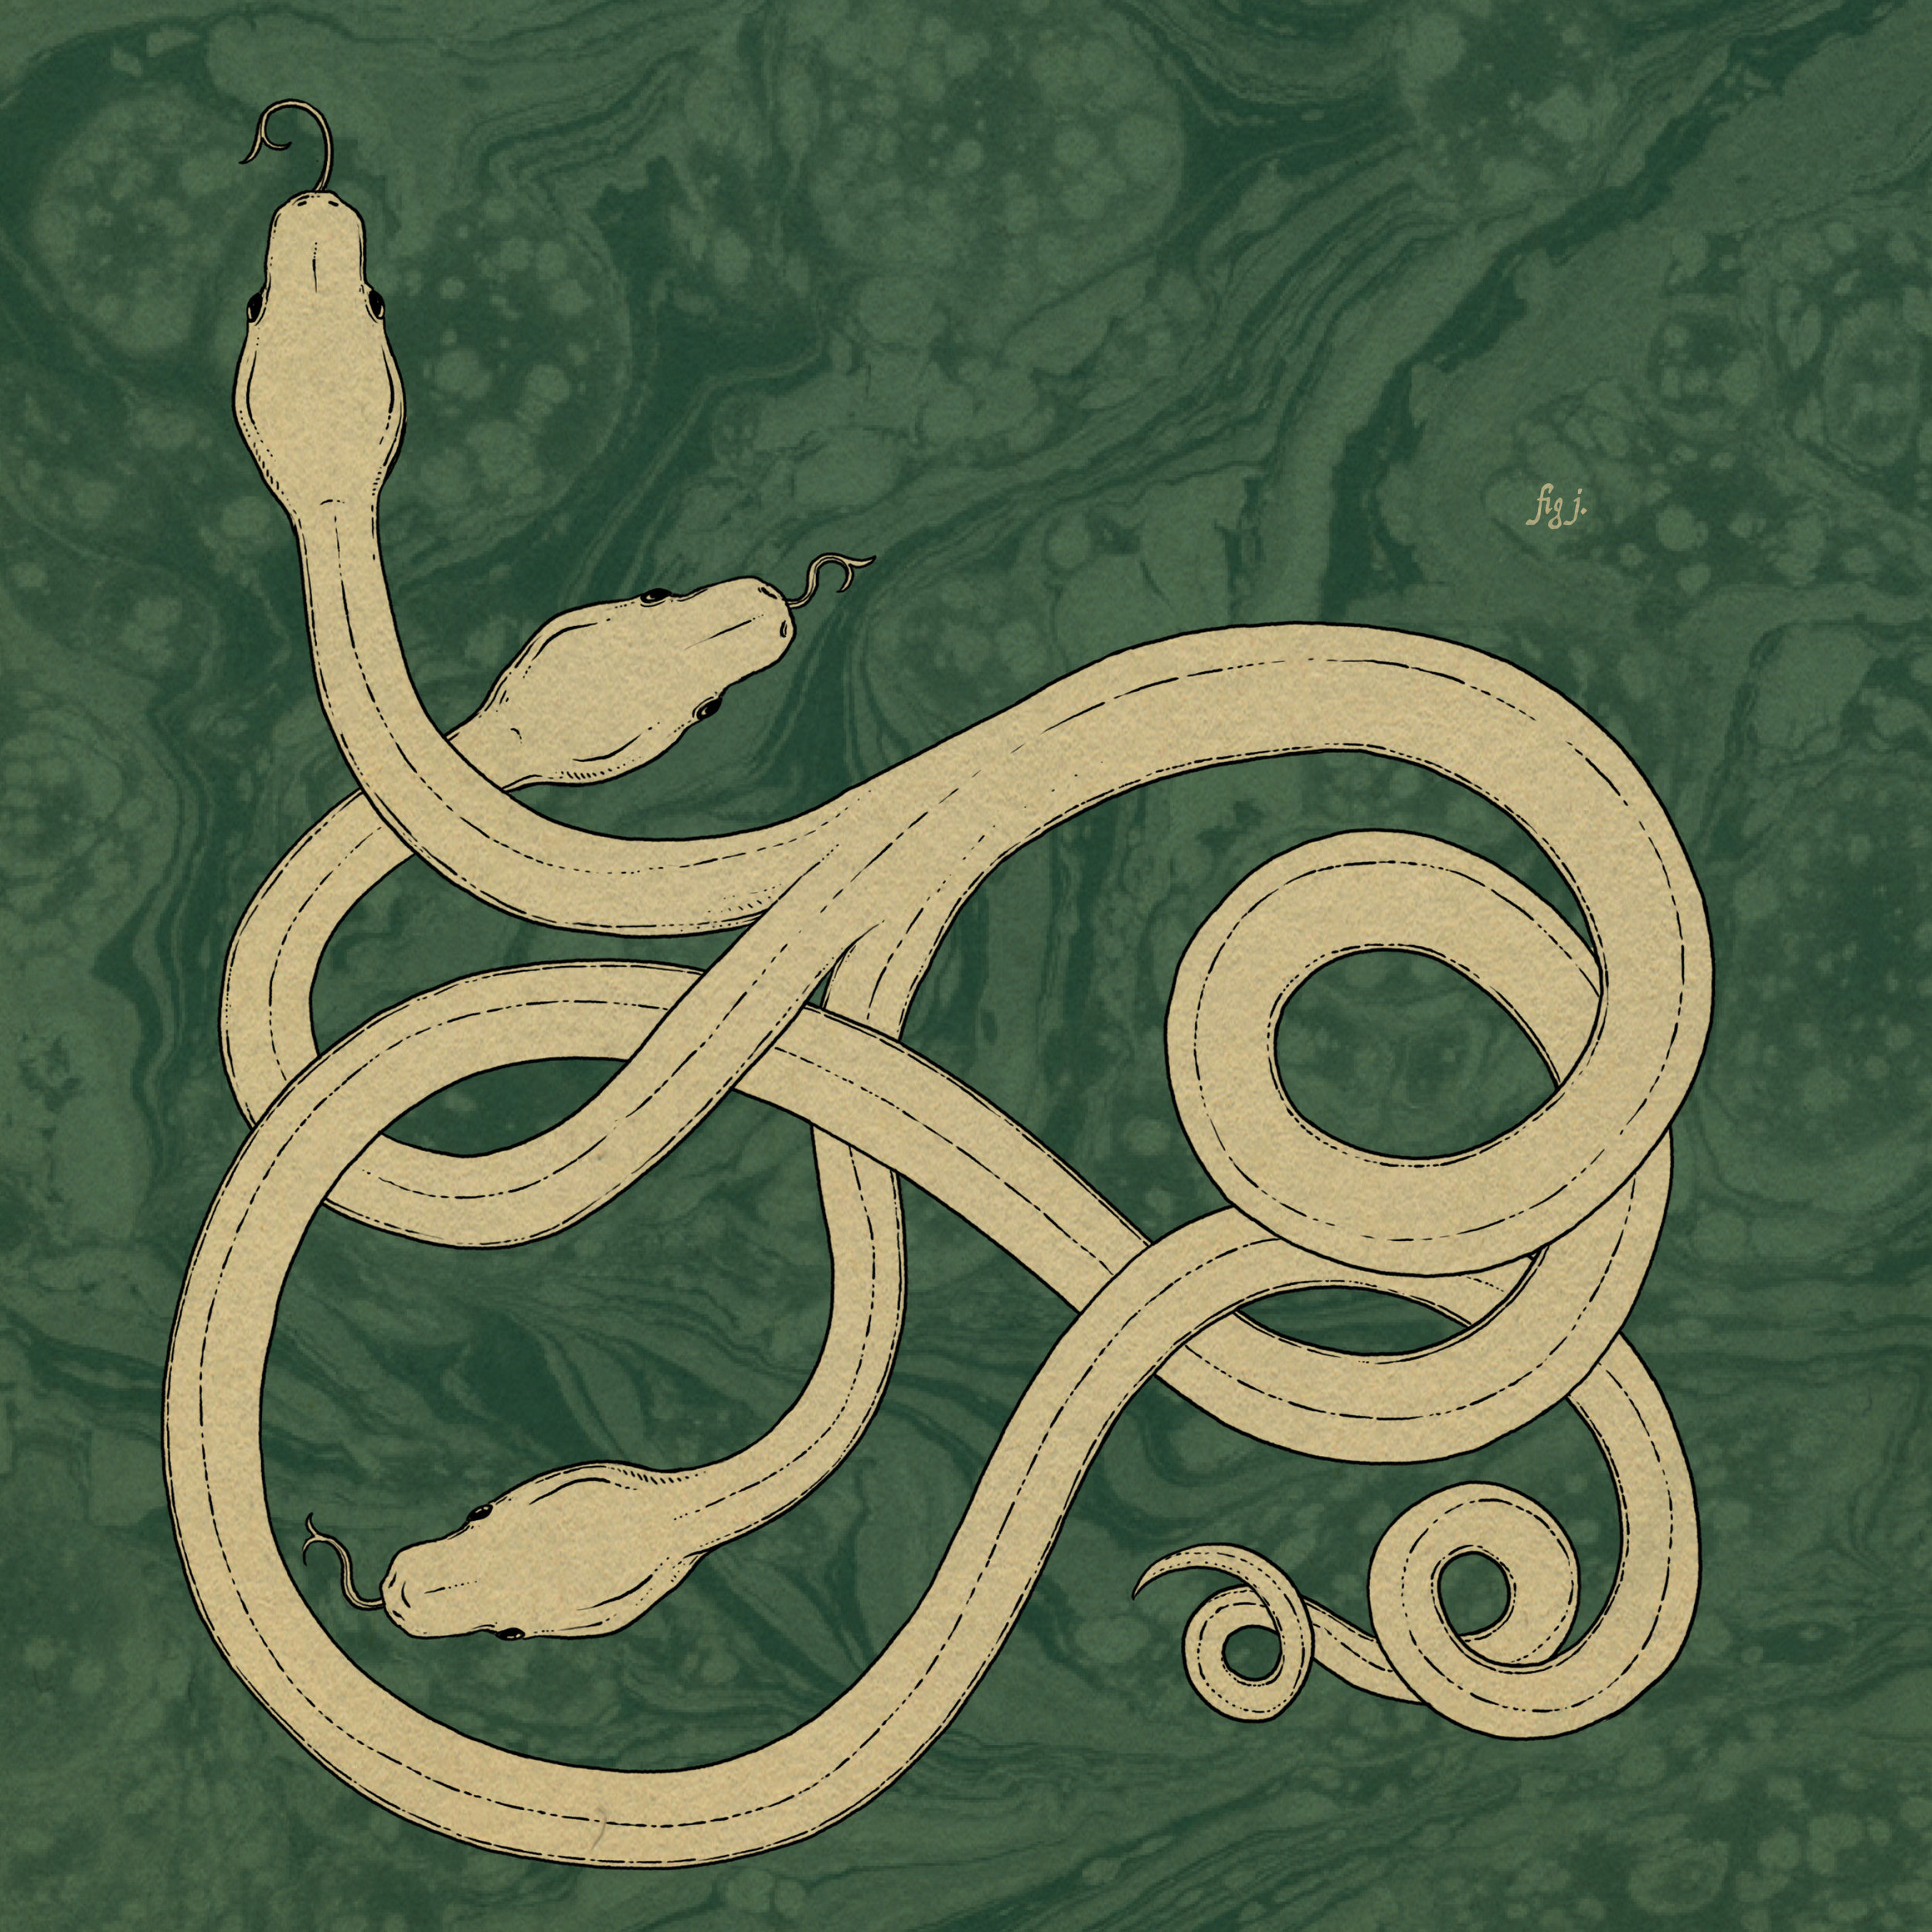 Runespoor | Taken from the Pottermore website.